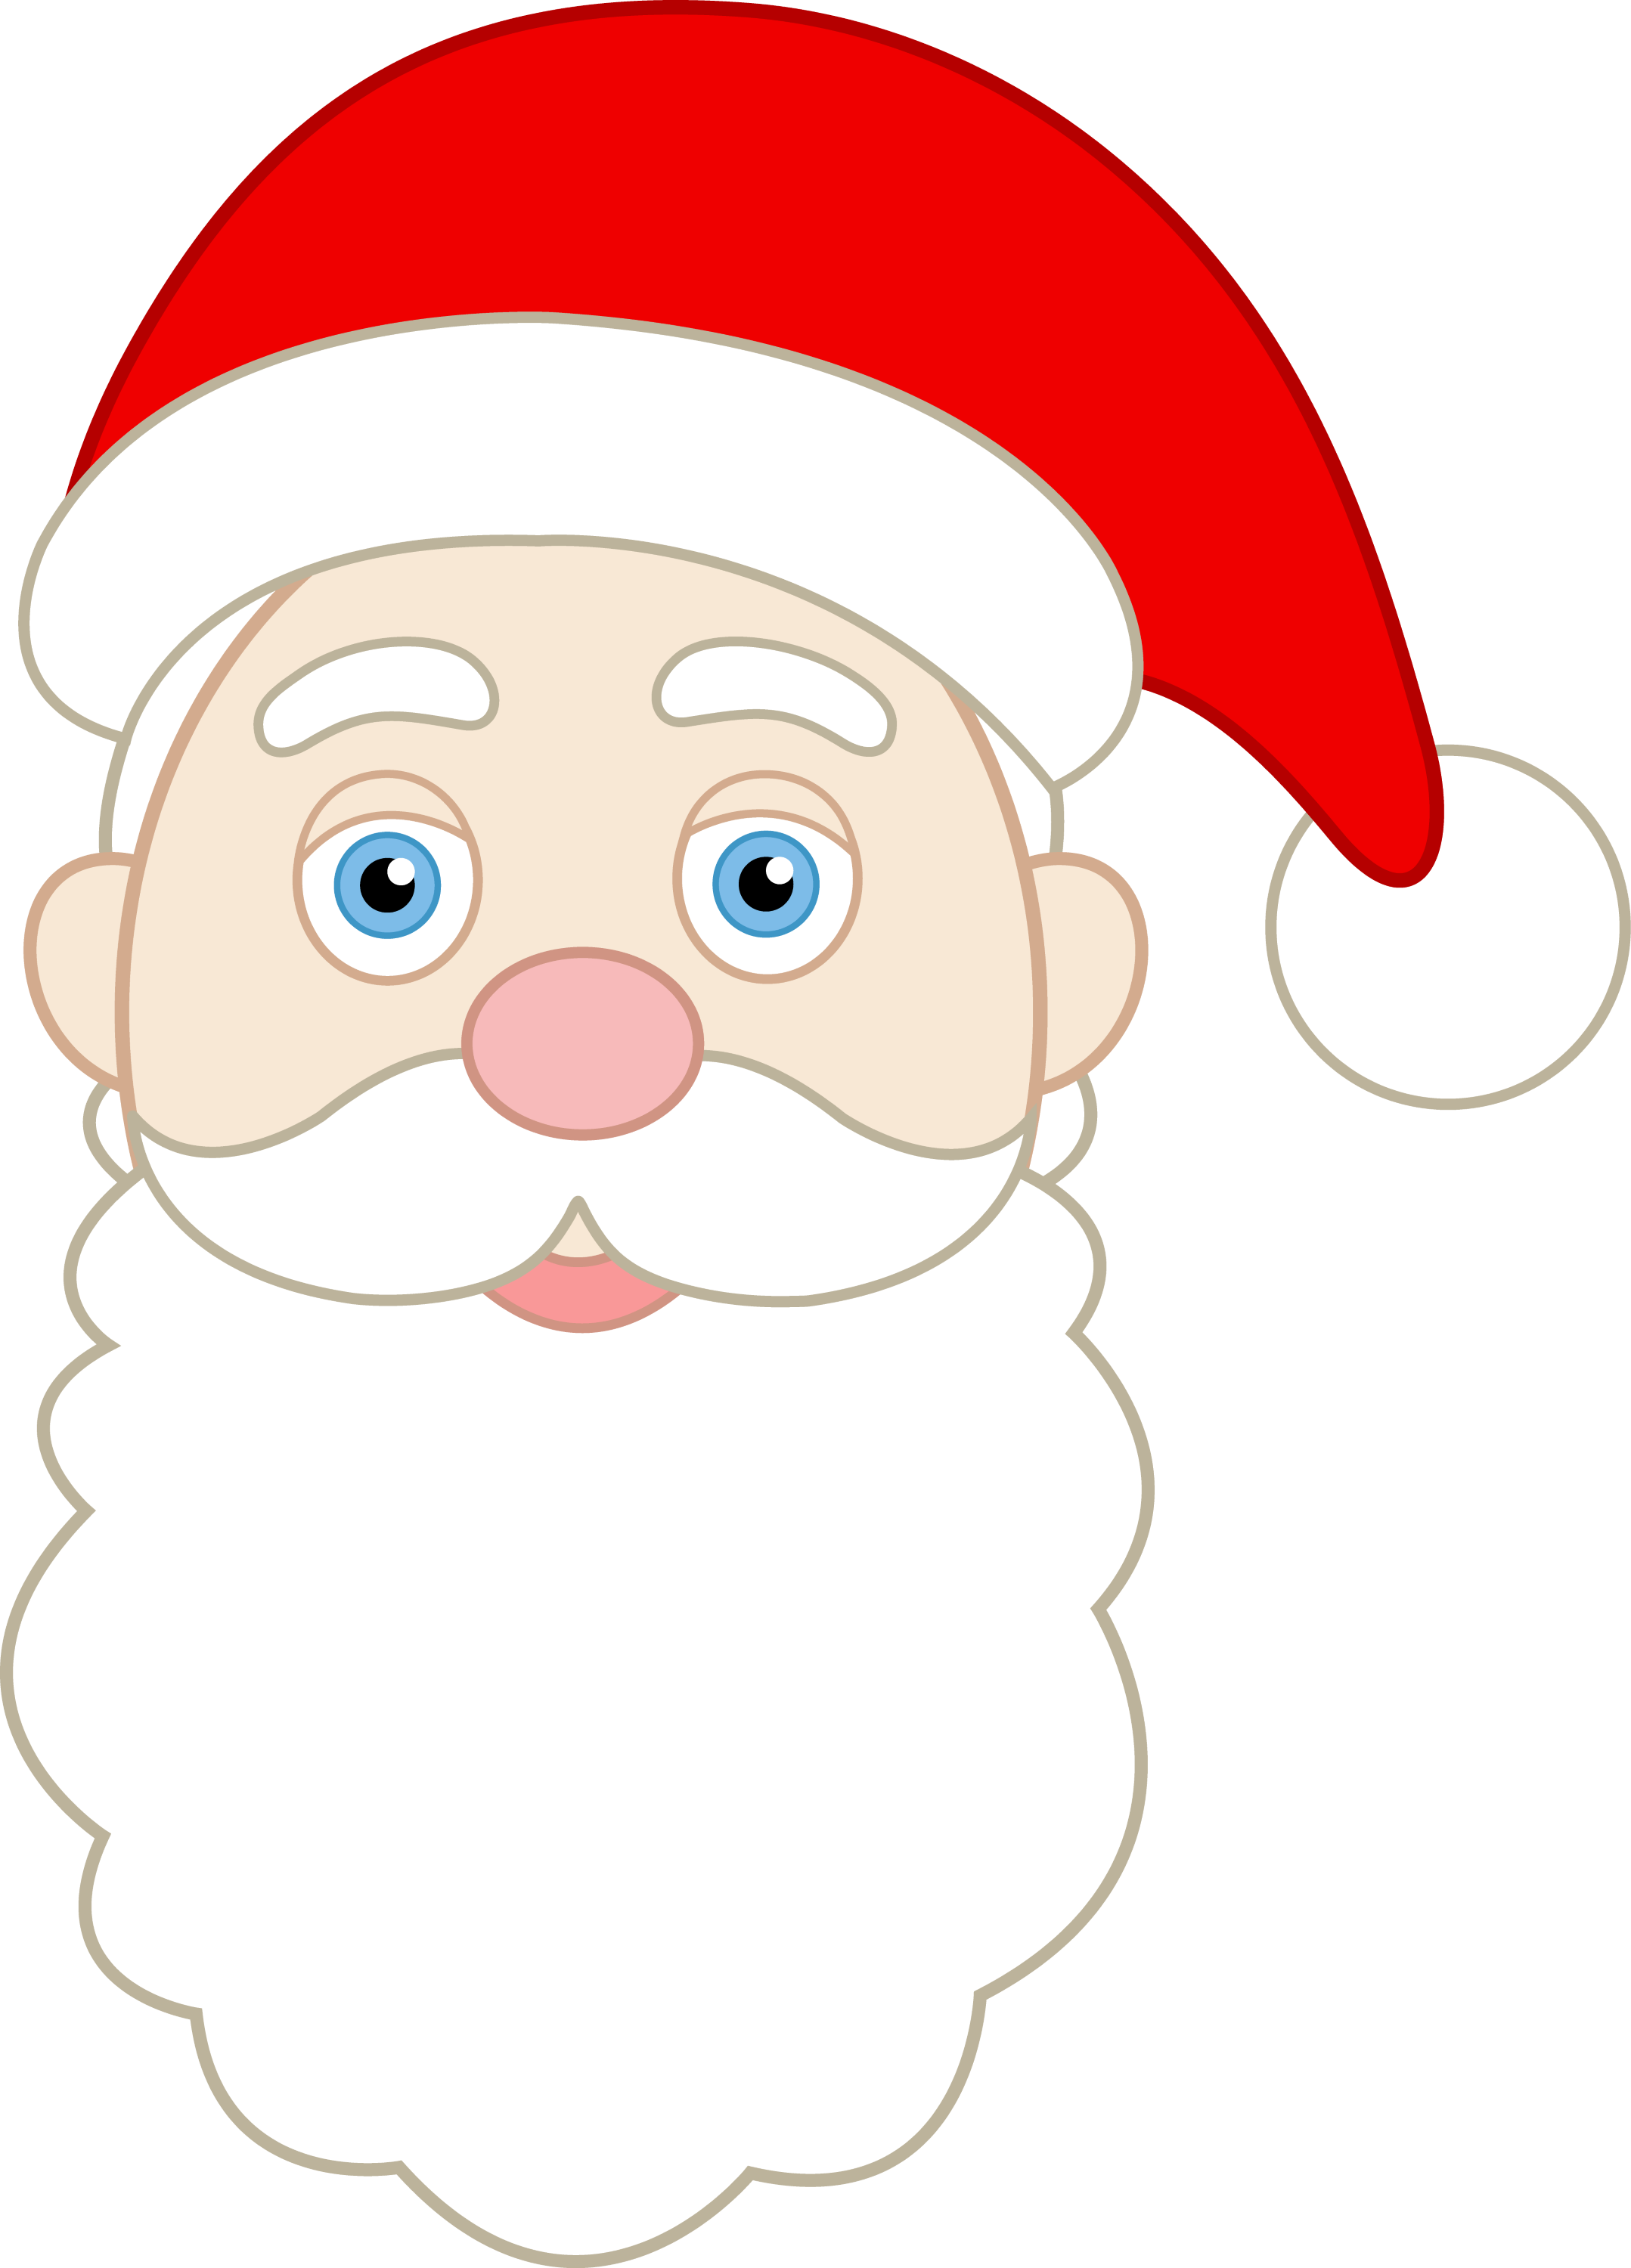 Santa Claus Beard Png Images & Pictures - Becuo